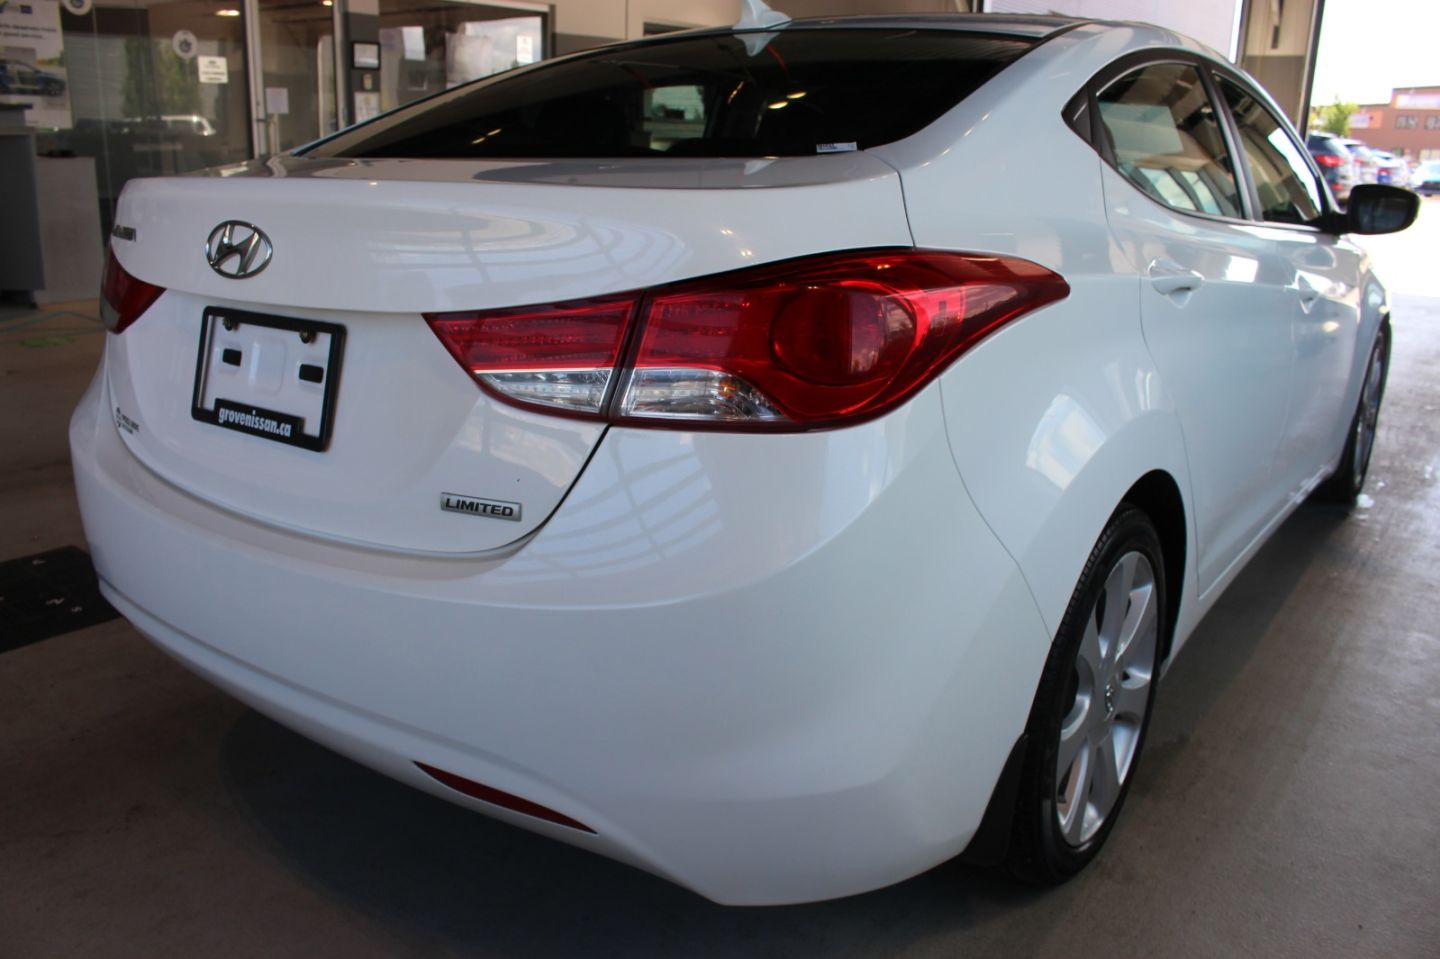 2013 Hyundai Elantra Limited for sale in Spruce Grove, Alberta